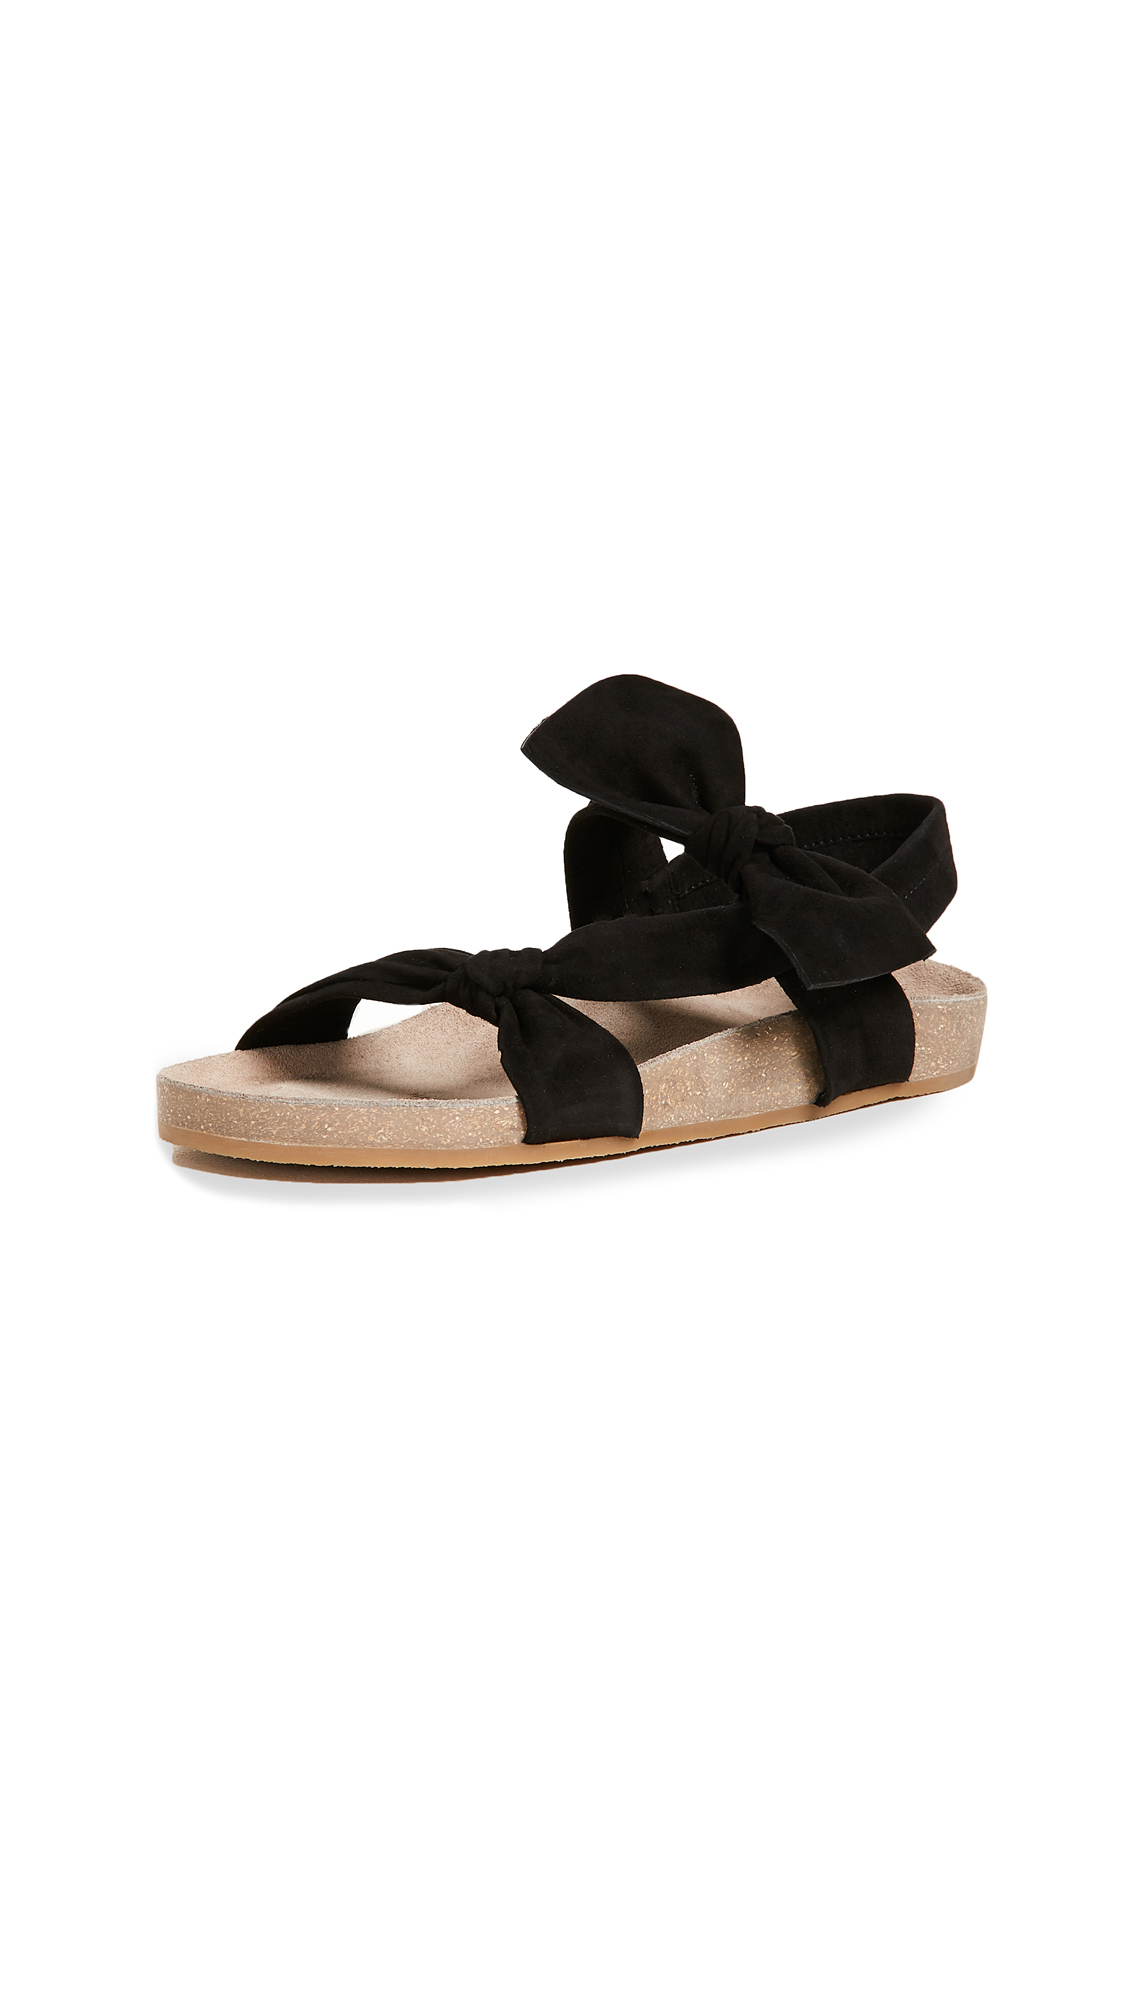 Ulla Johnson Abril Slides - Noir